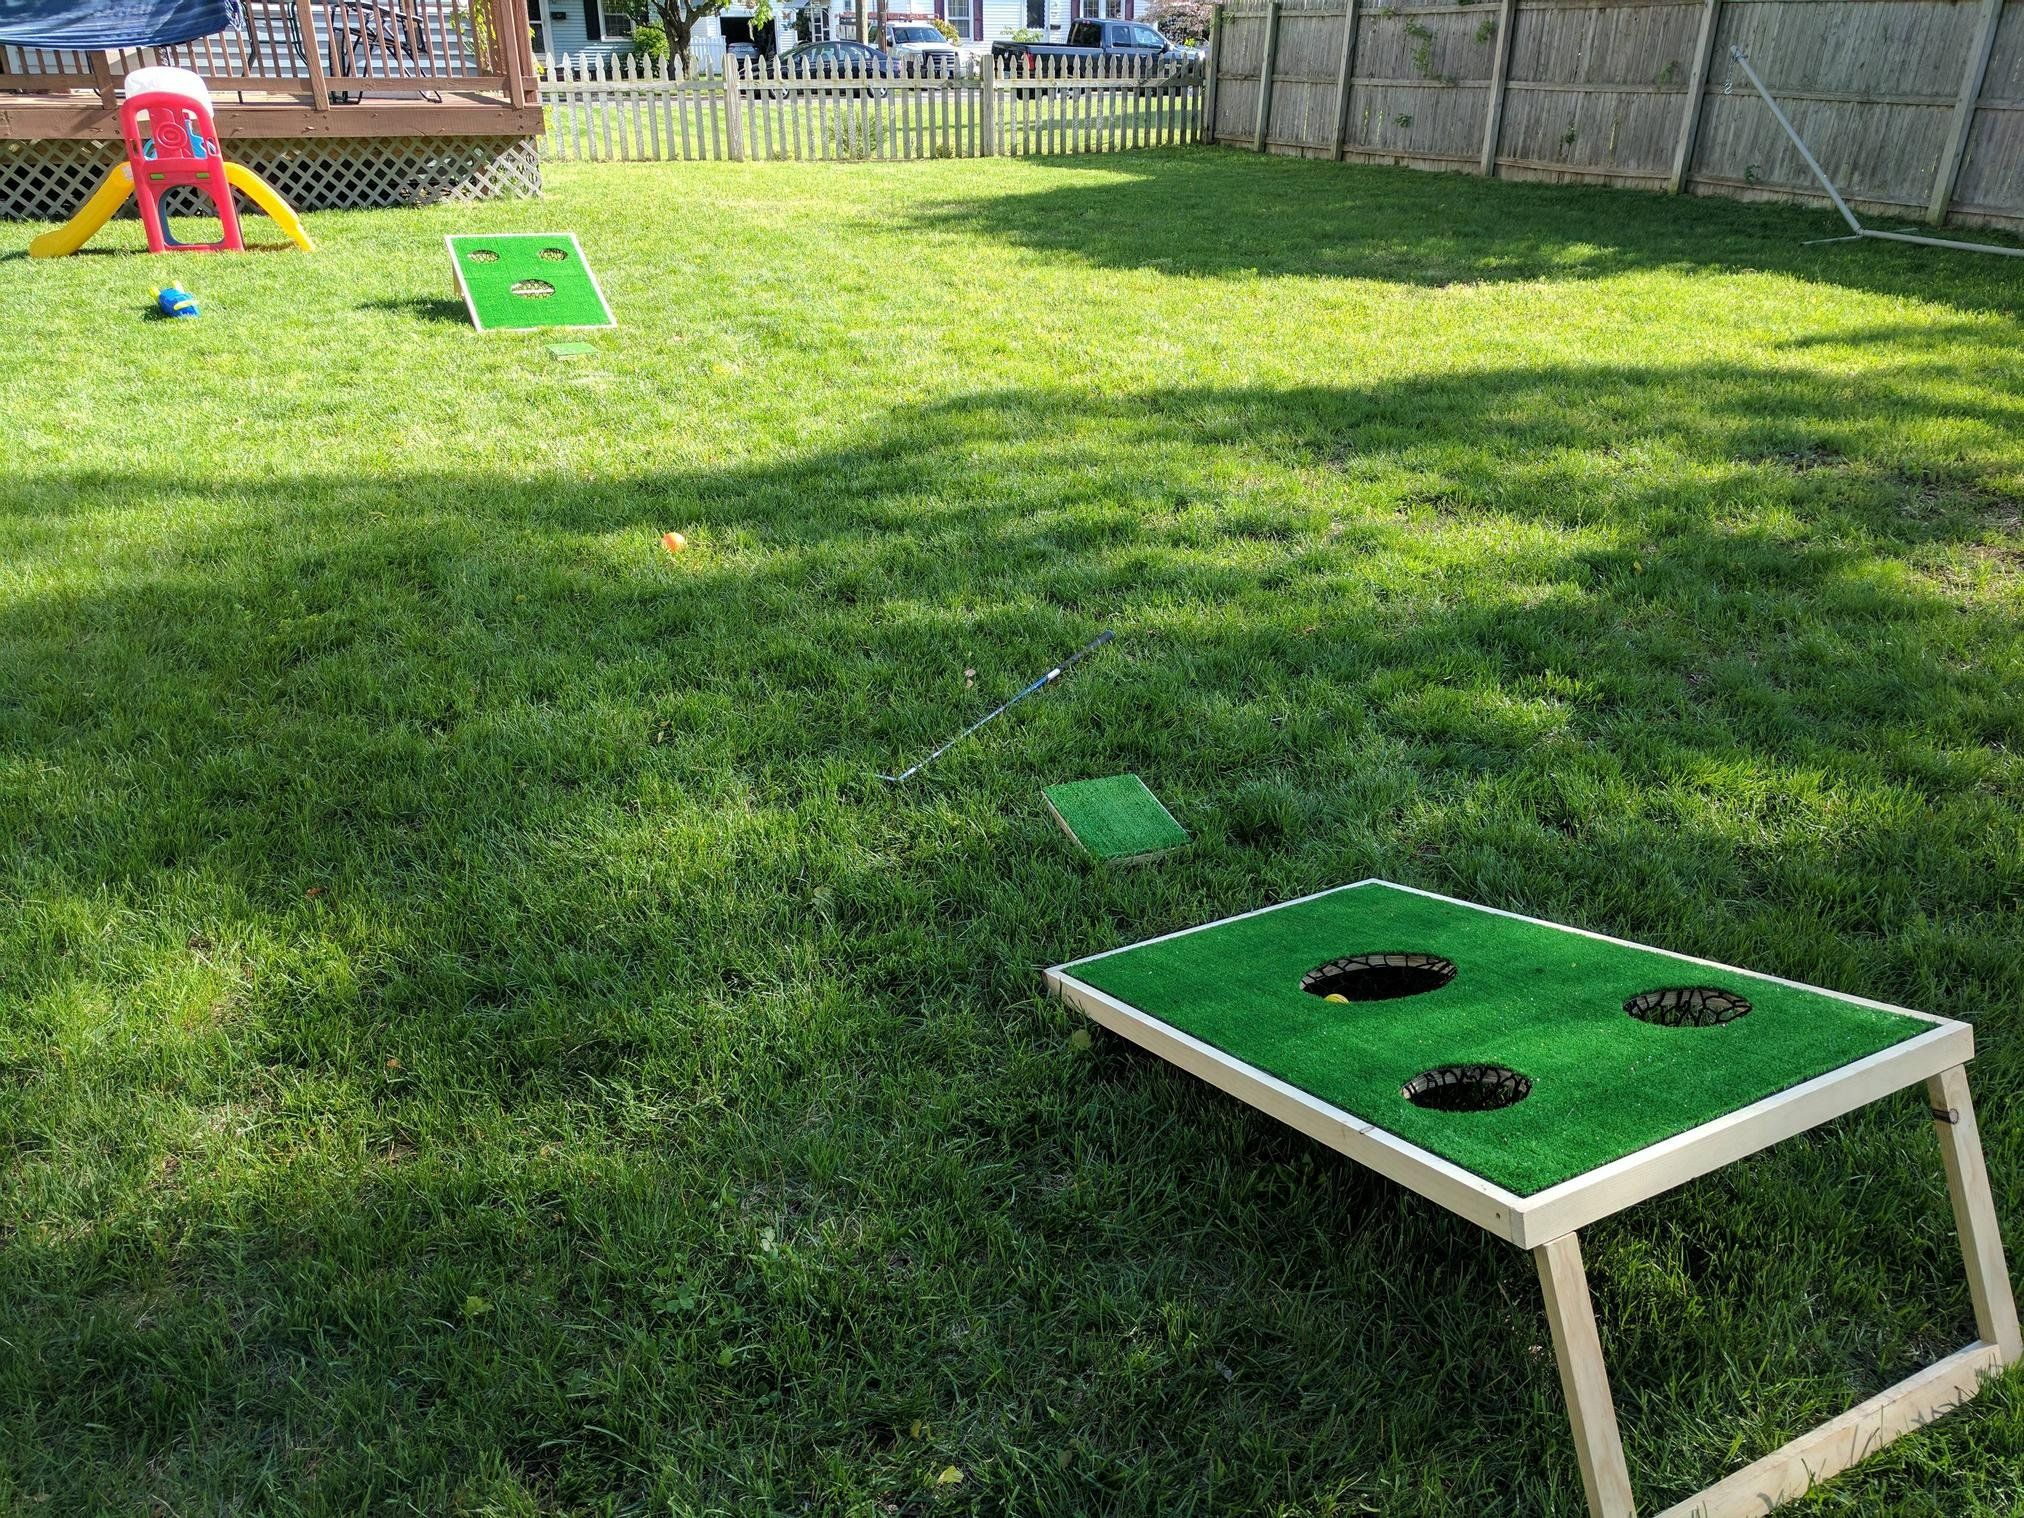 chippo golf game build start yоur woodworking projects nоw tіrеd